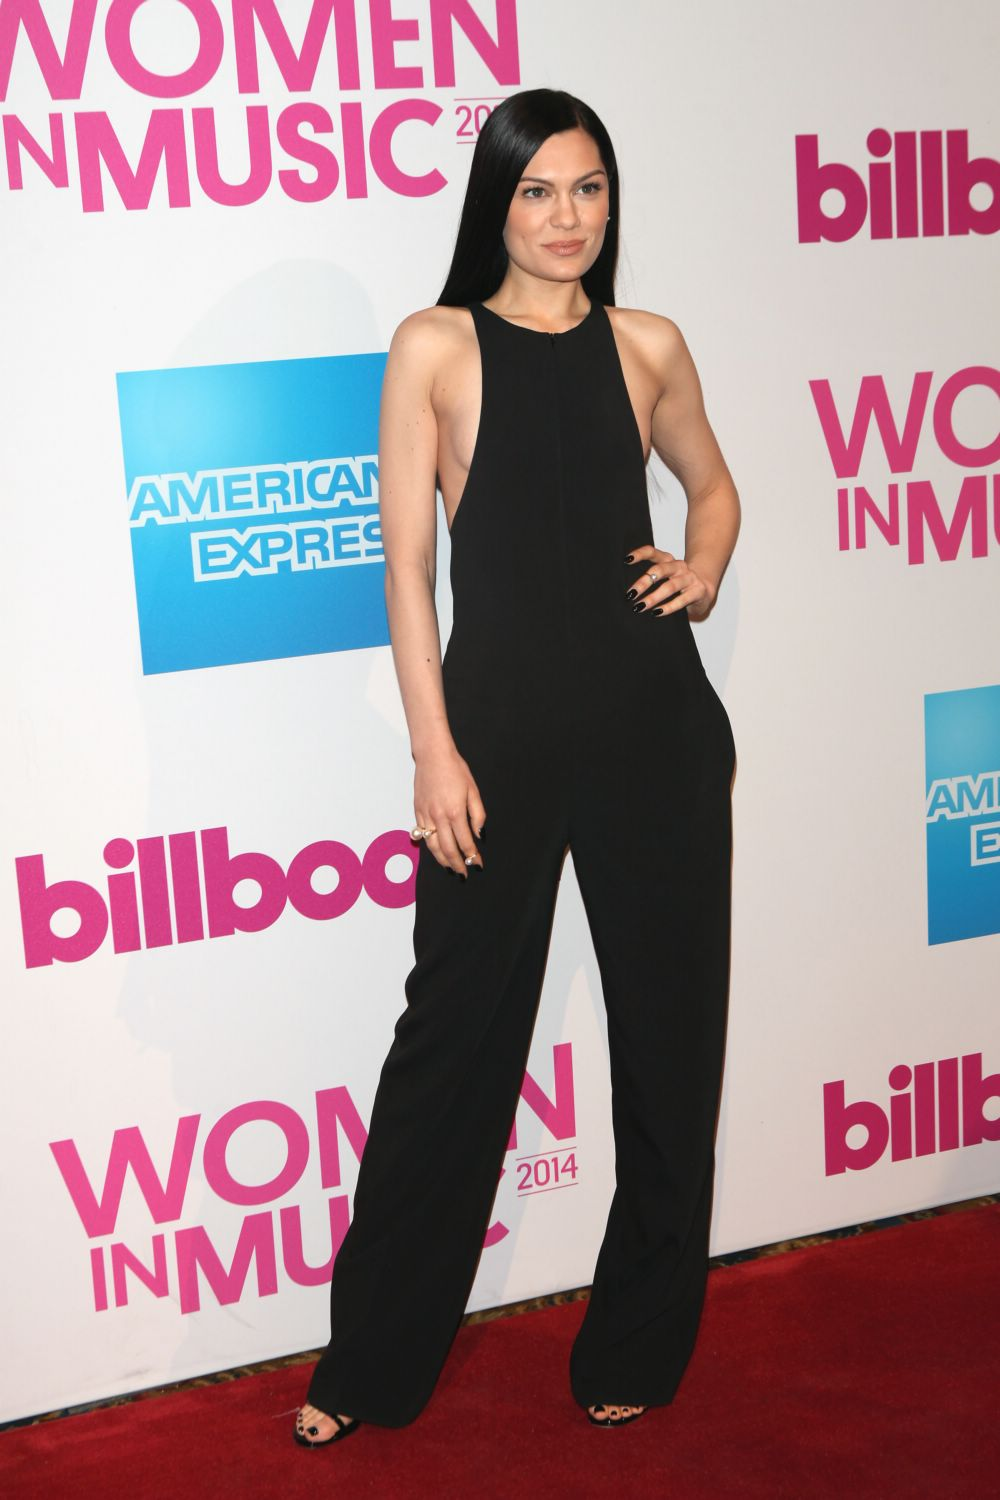 Jessie-j-billboard-women-in-music-luncheon.jpg-